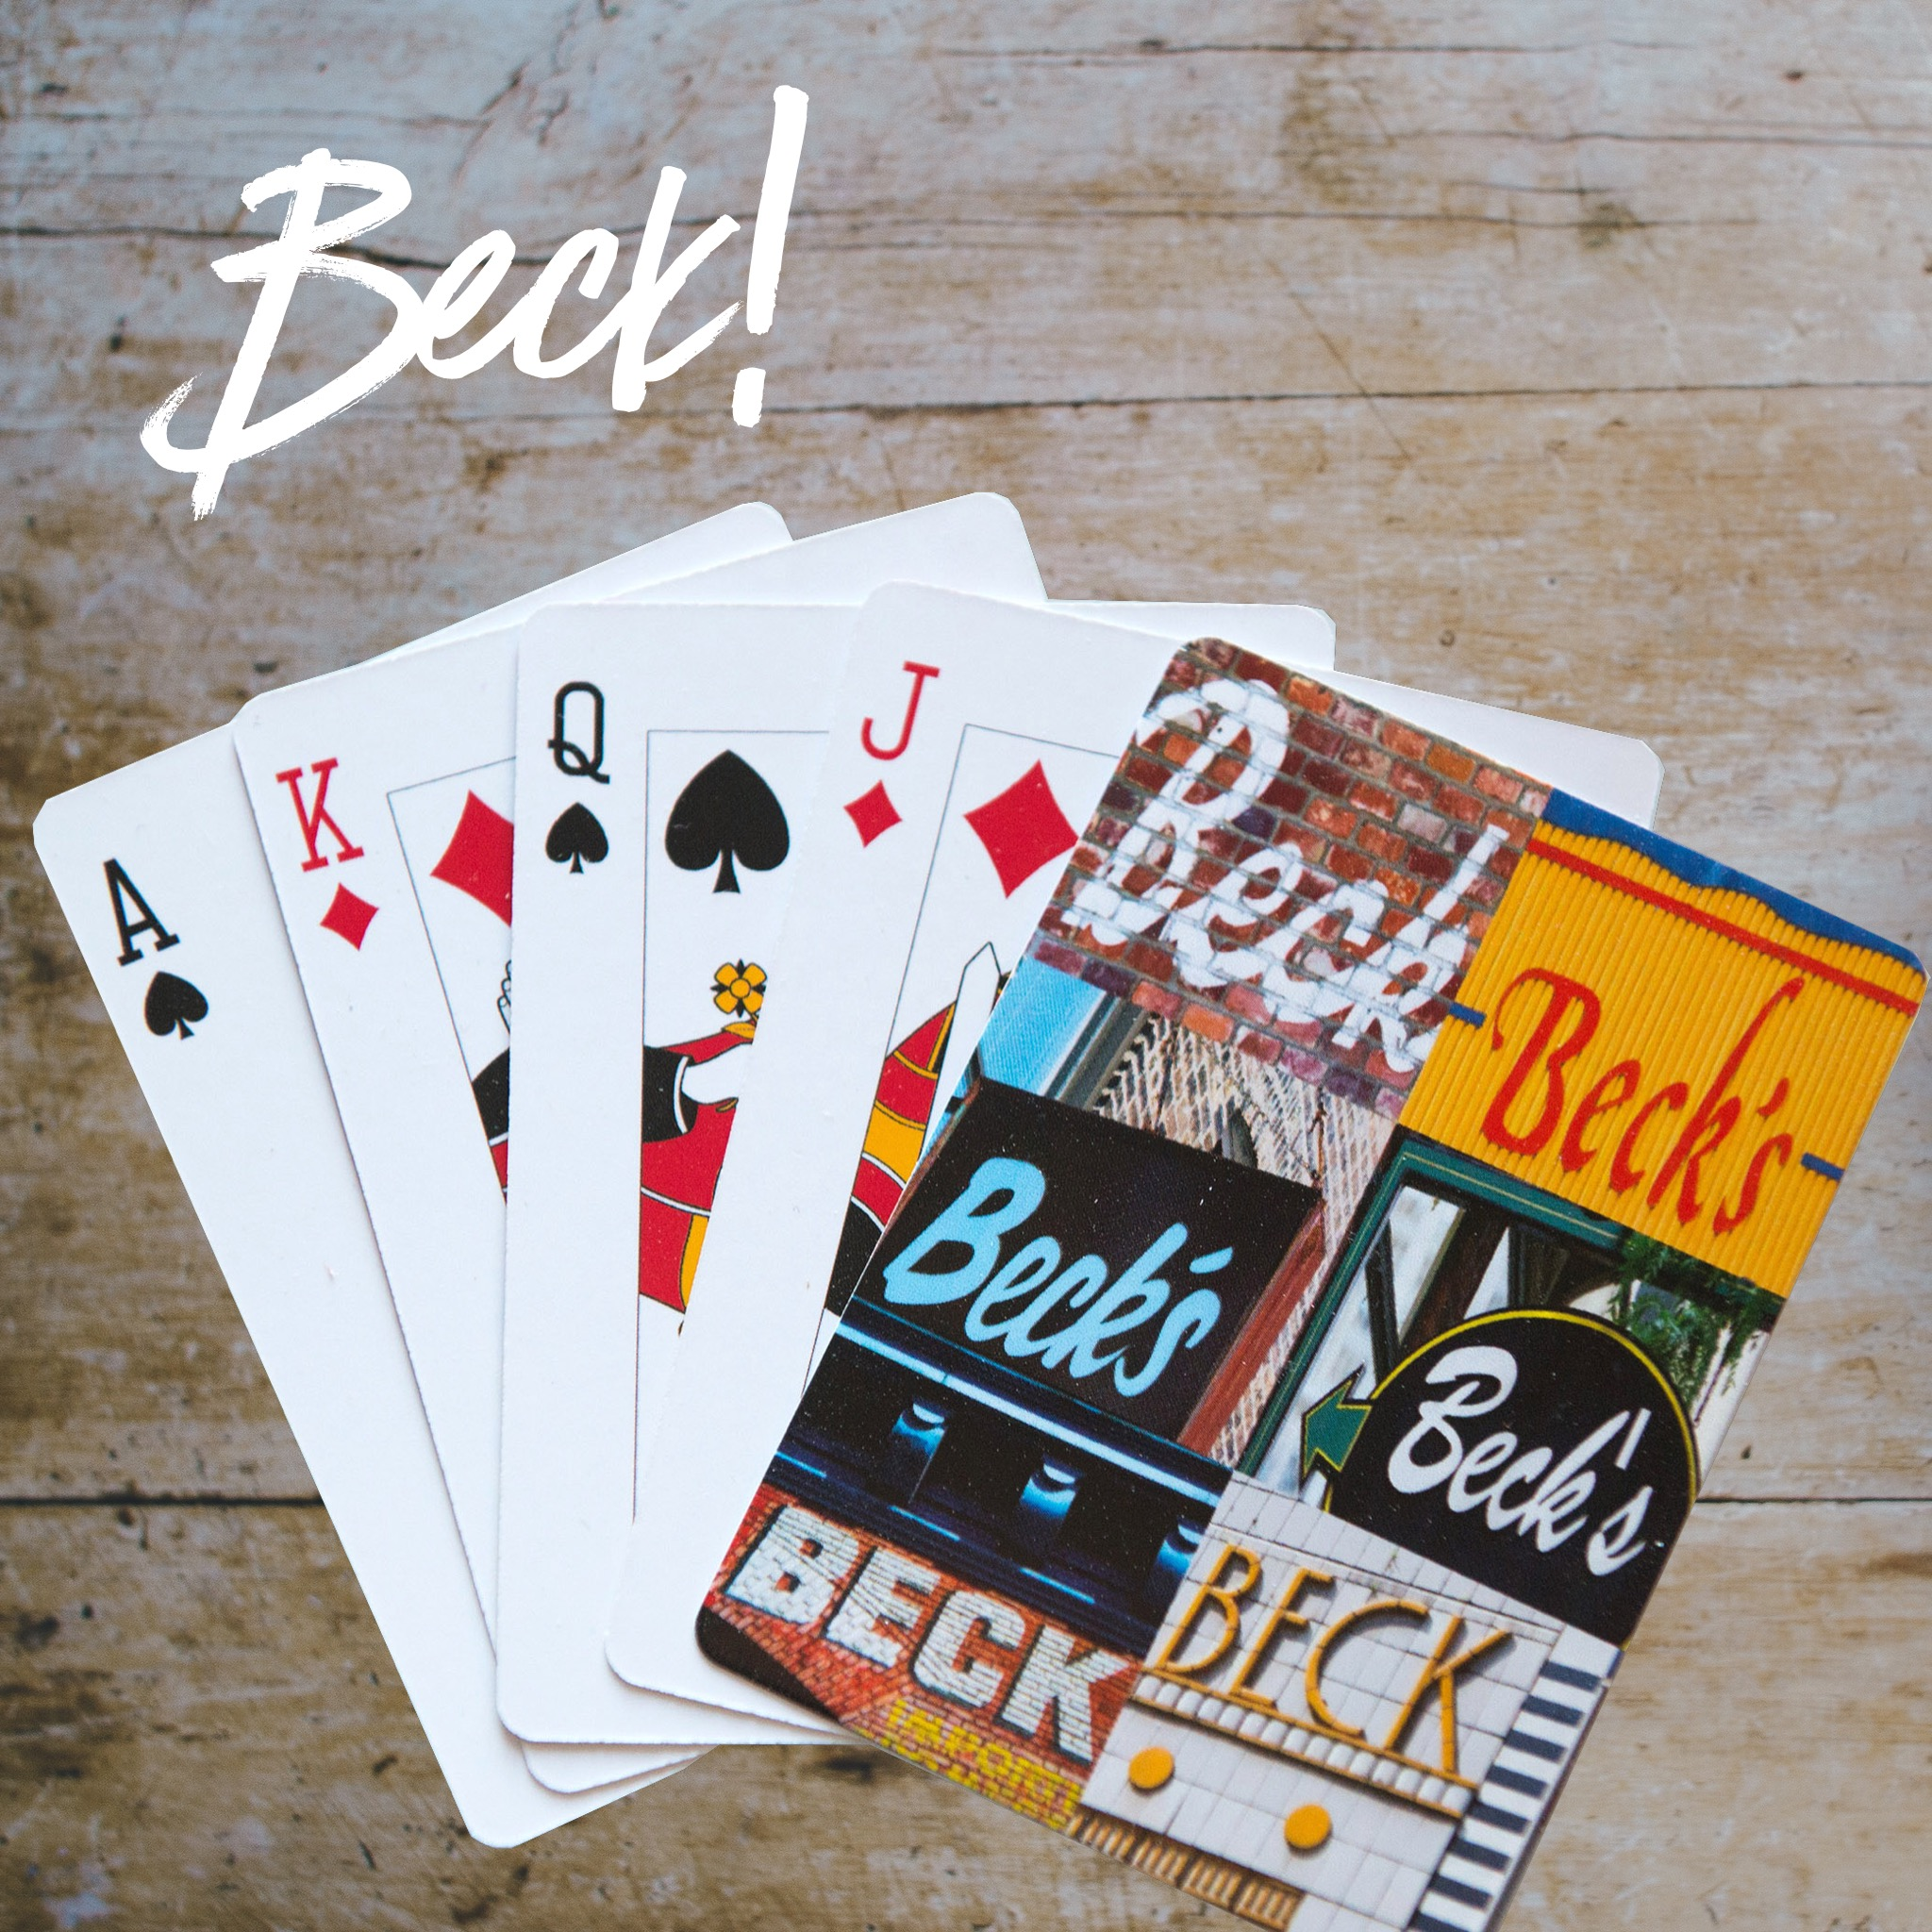 https://www.etsy.com/listing/512195186/custom-playing-cards-featuring-the-name